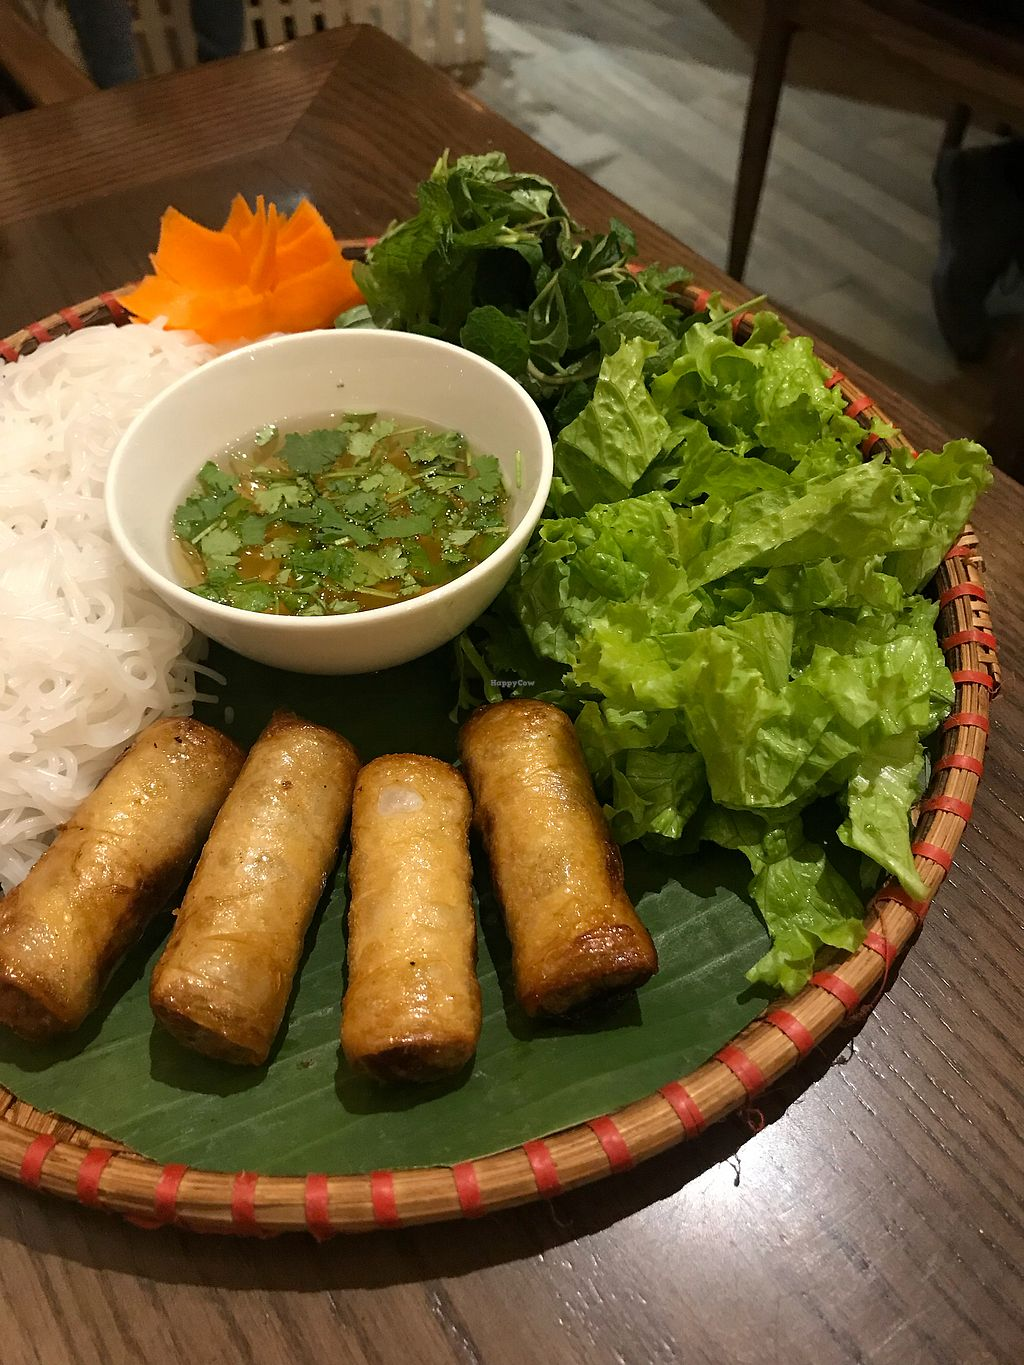 """Photo of Minh Chay - Hang Gai  by <a href=""""/members/profile/vegetariangirl"""">vegetariangirl</a> <br/>Spring rolls <br/> January 14, 2018  - <a href='/contact/abuse/image/83266/346431'>Report</a>"""